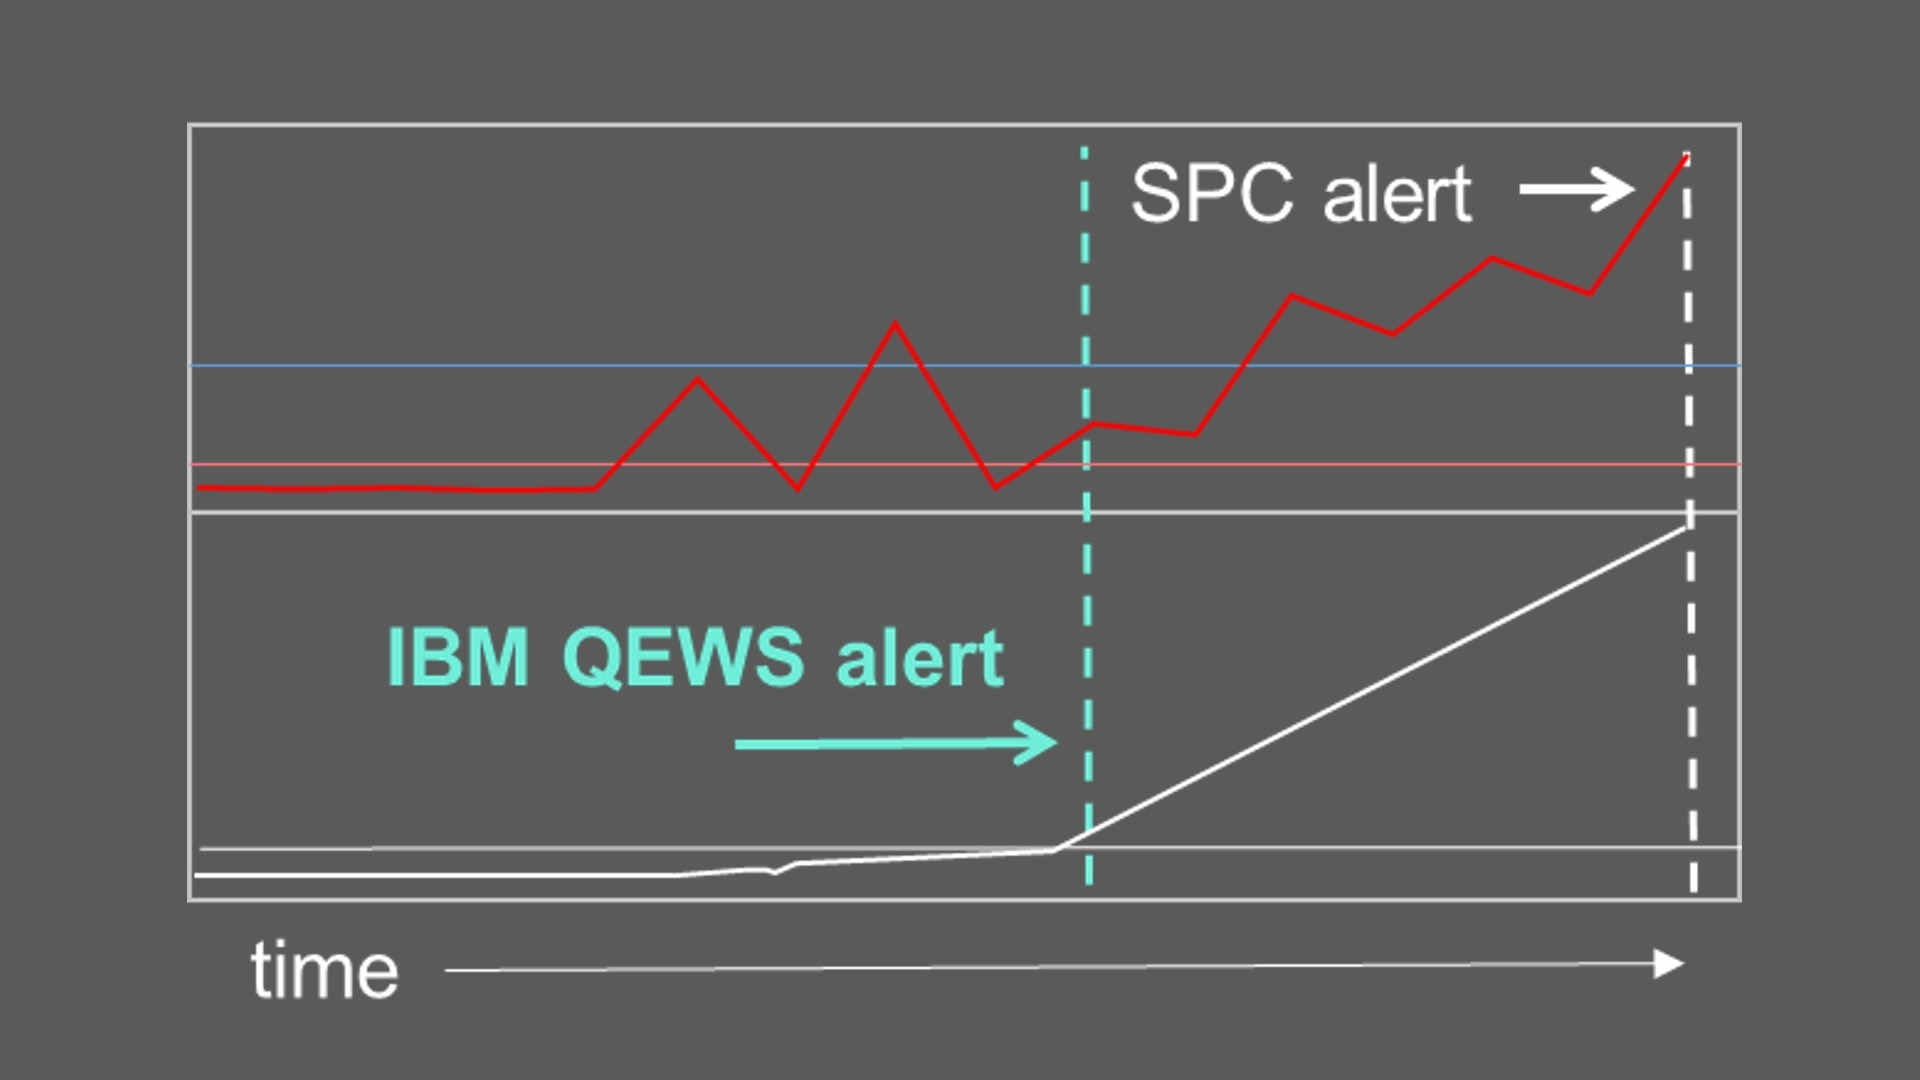 Quality Early Warning System (QEWS)